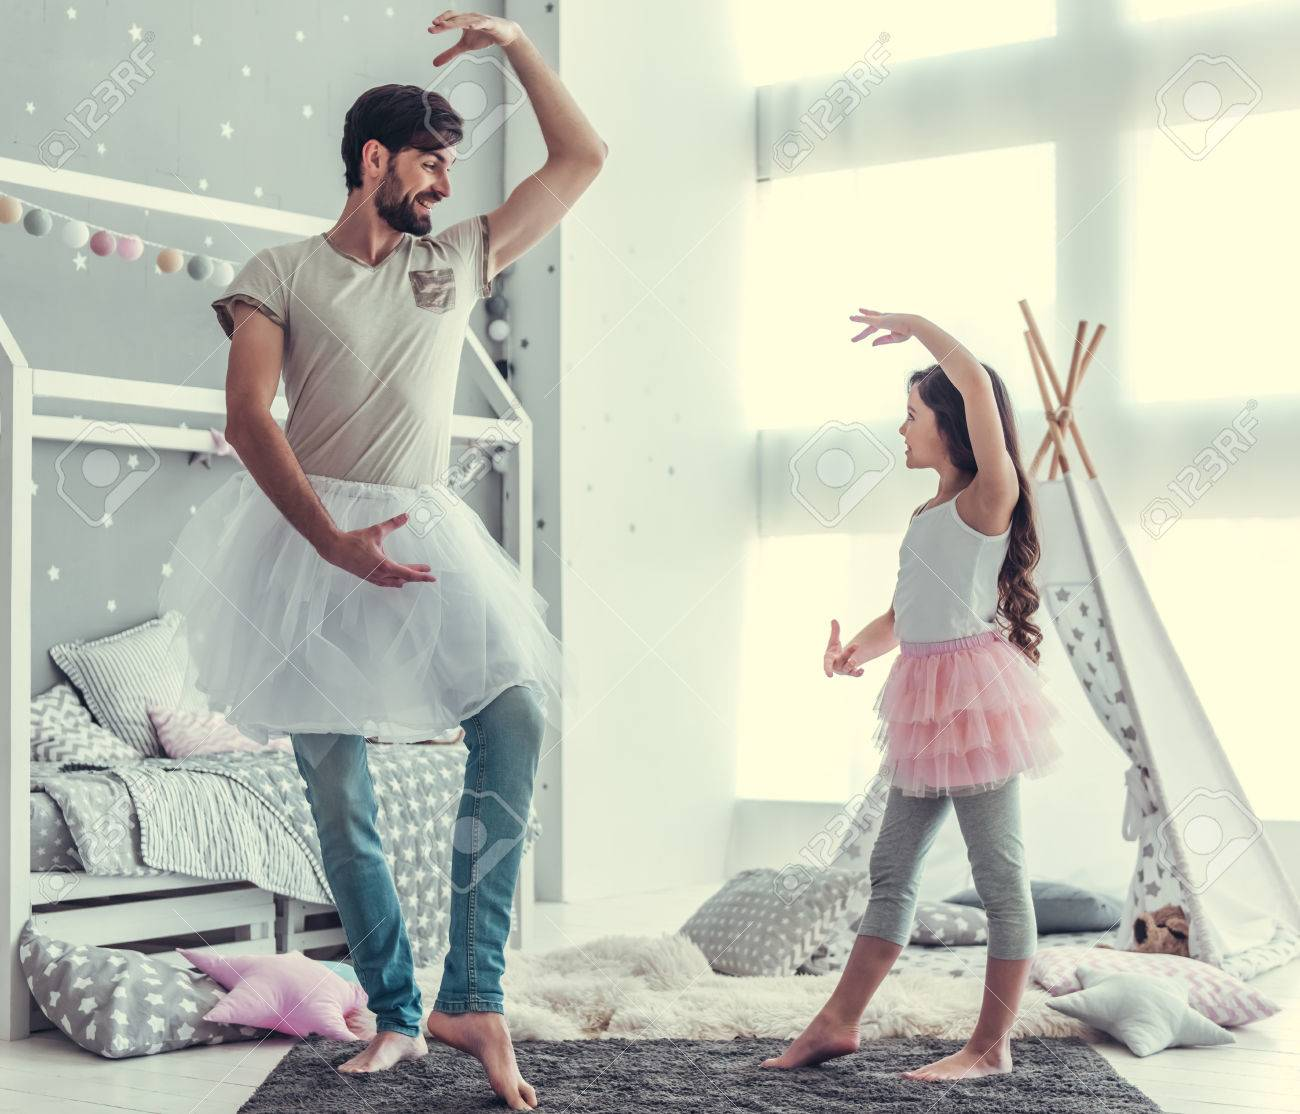 Cute little daughter and her handsome young dad in skirts are dancing and smiling while playing together in child's room Standard-Bild - 81786730